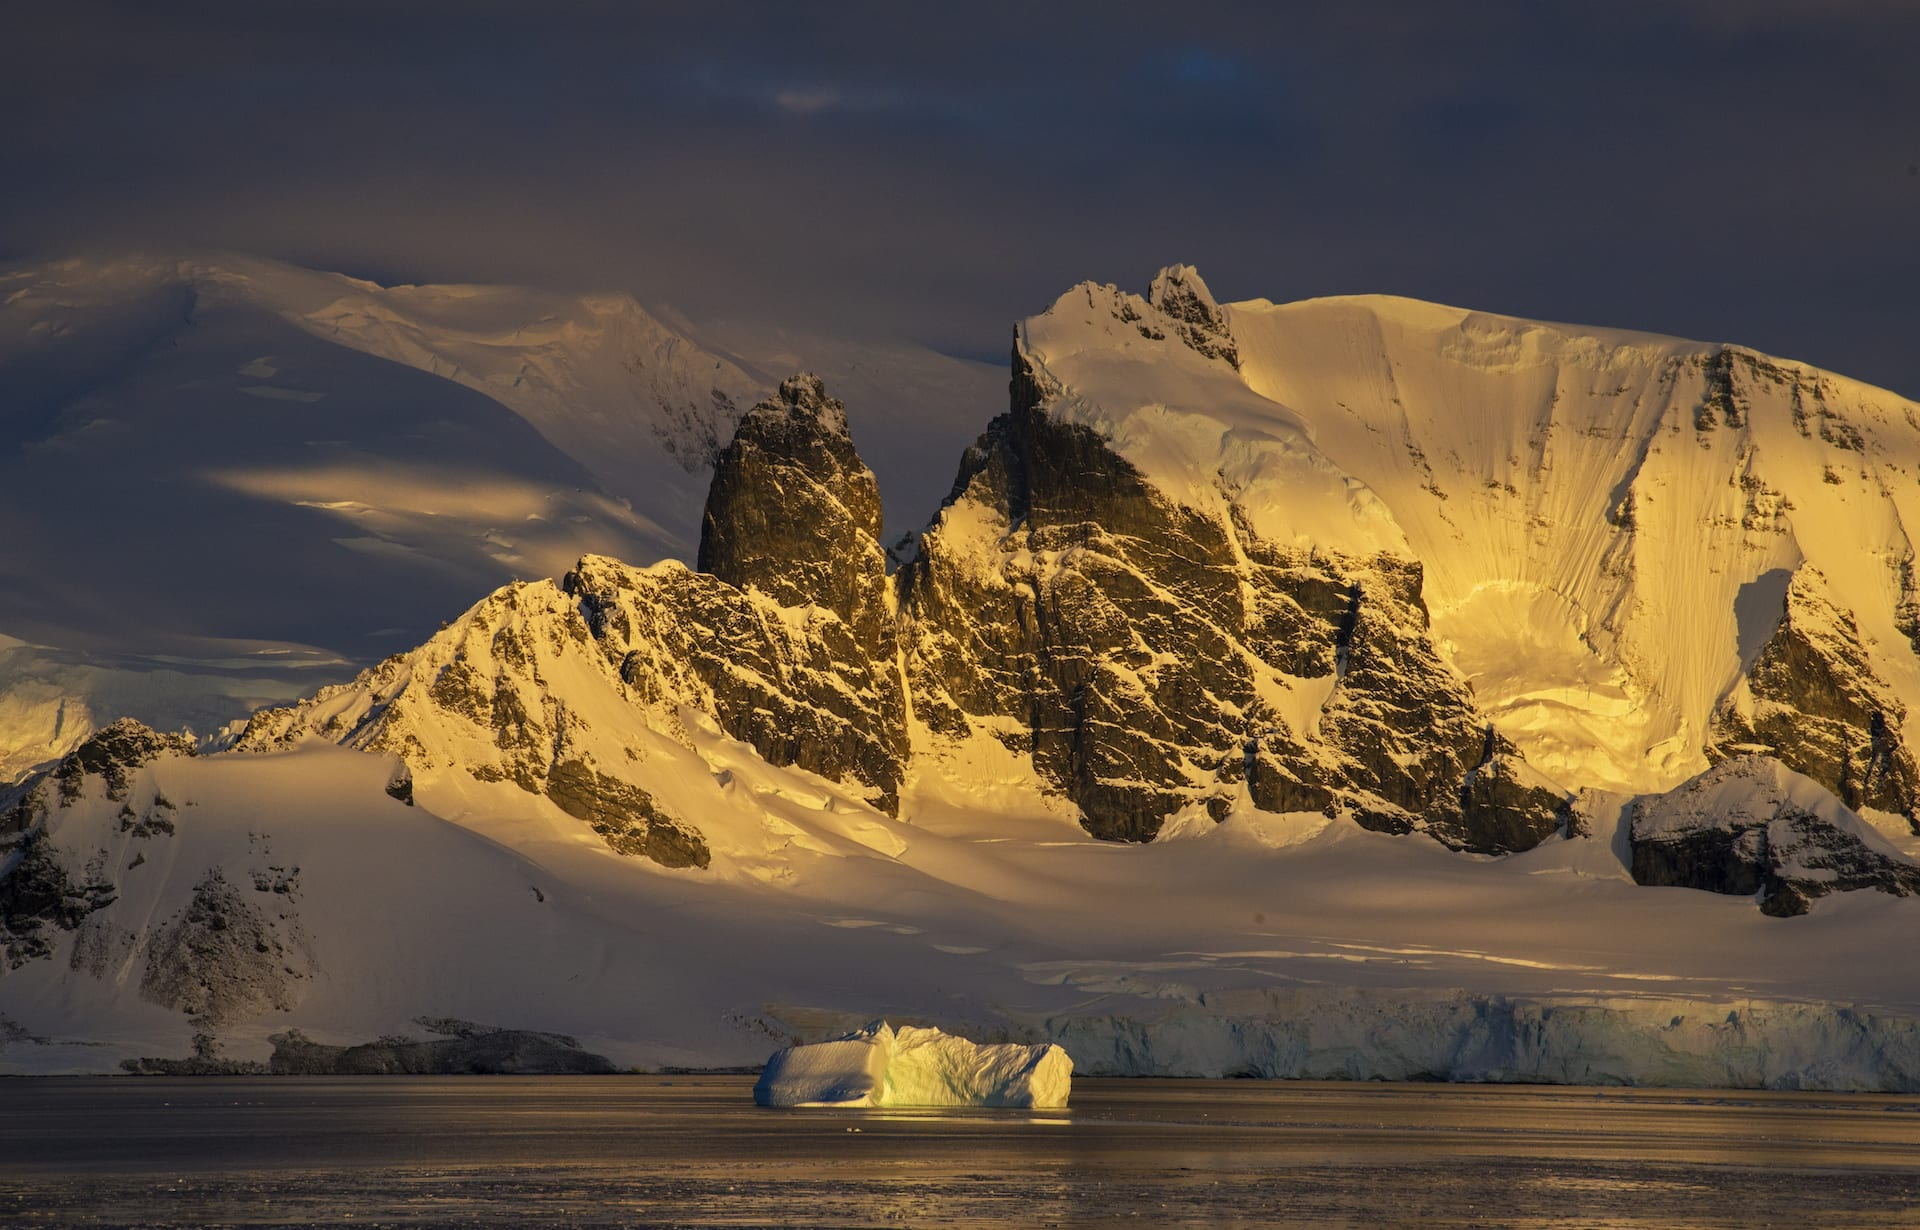 The sun sets over the Antarctic landscape, bathing the snow in a pale, golden light. Antarctica is the only continent that doubles in size in winter, but despite its extreme weather, it is home to its own unique diversity of animal life.